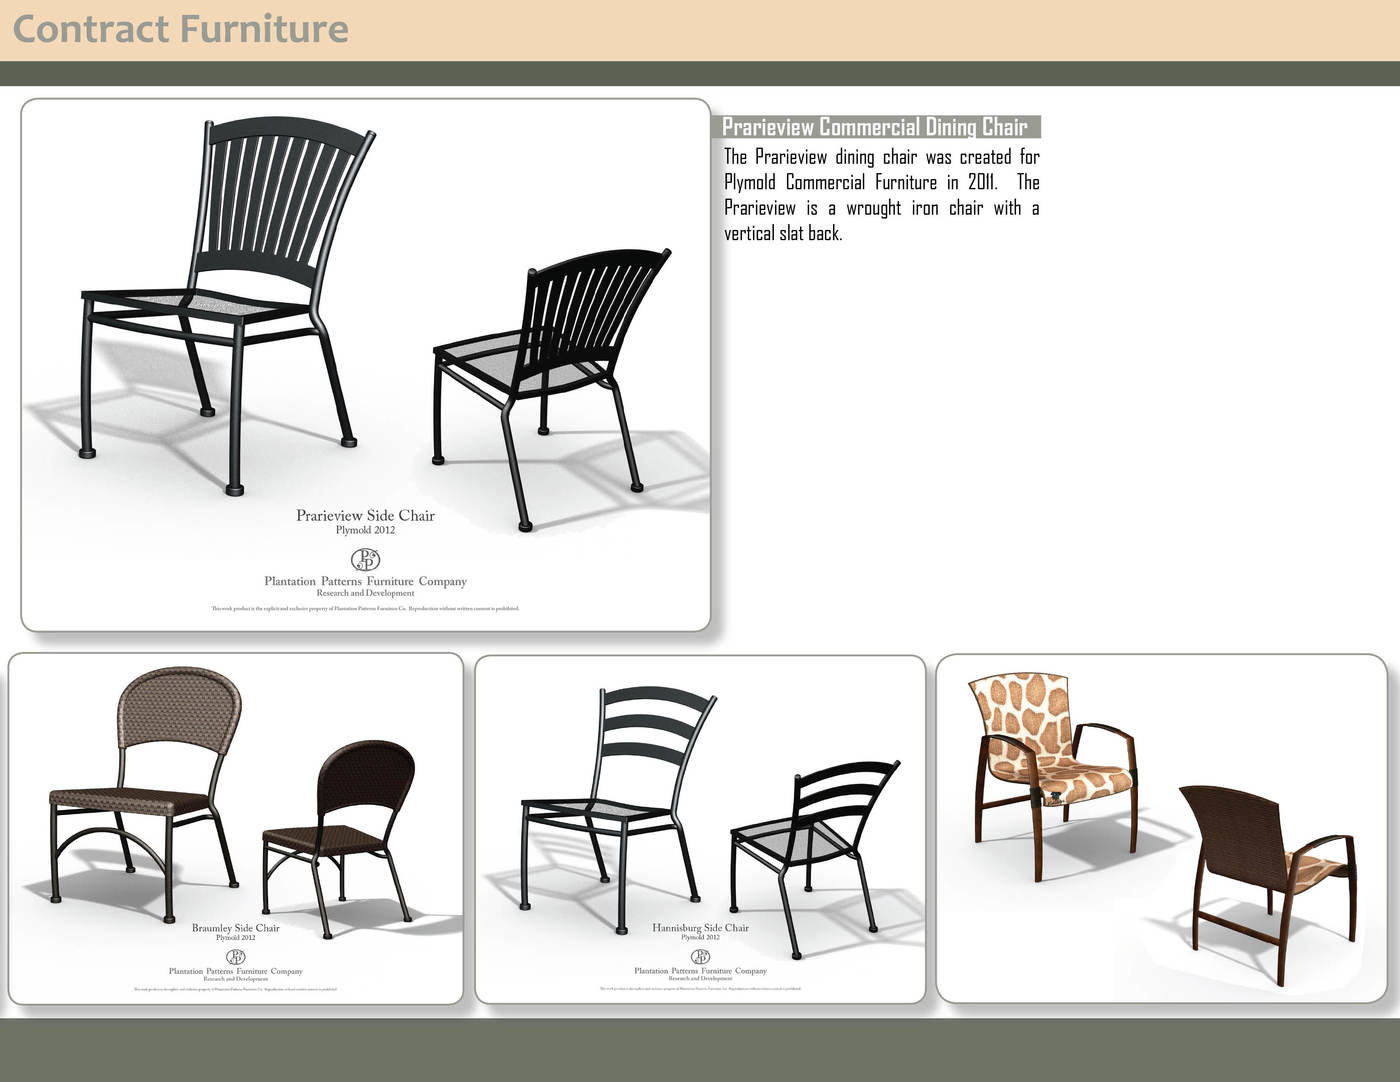 Contract Patio Furnitre   Solidworks Renderings Of Contract Patio Furniture.